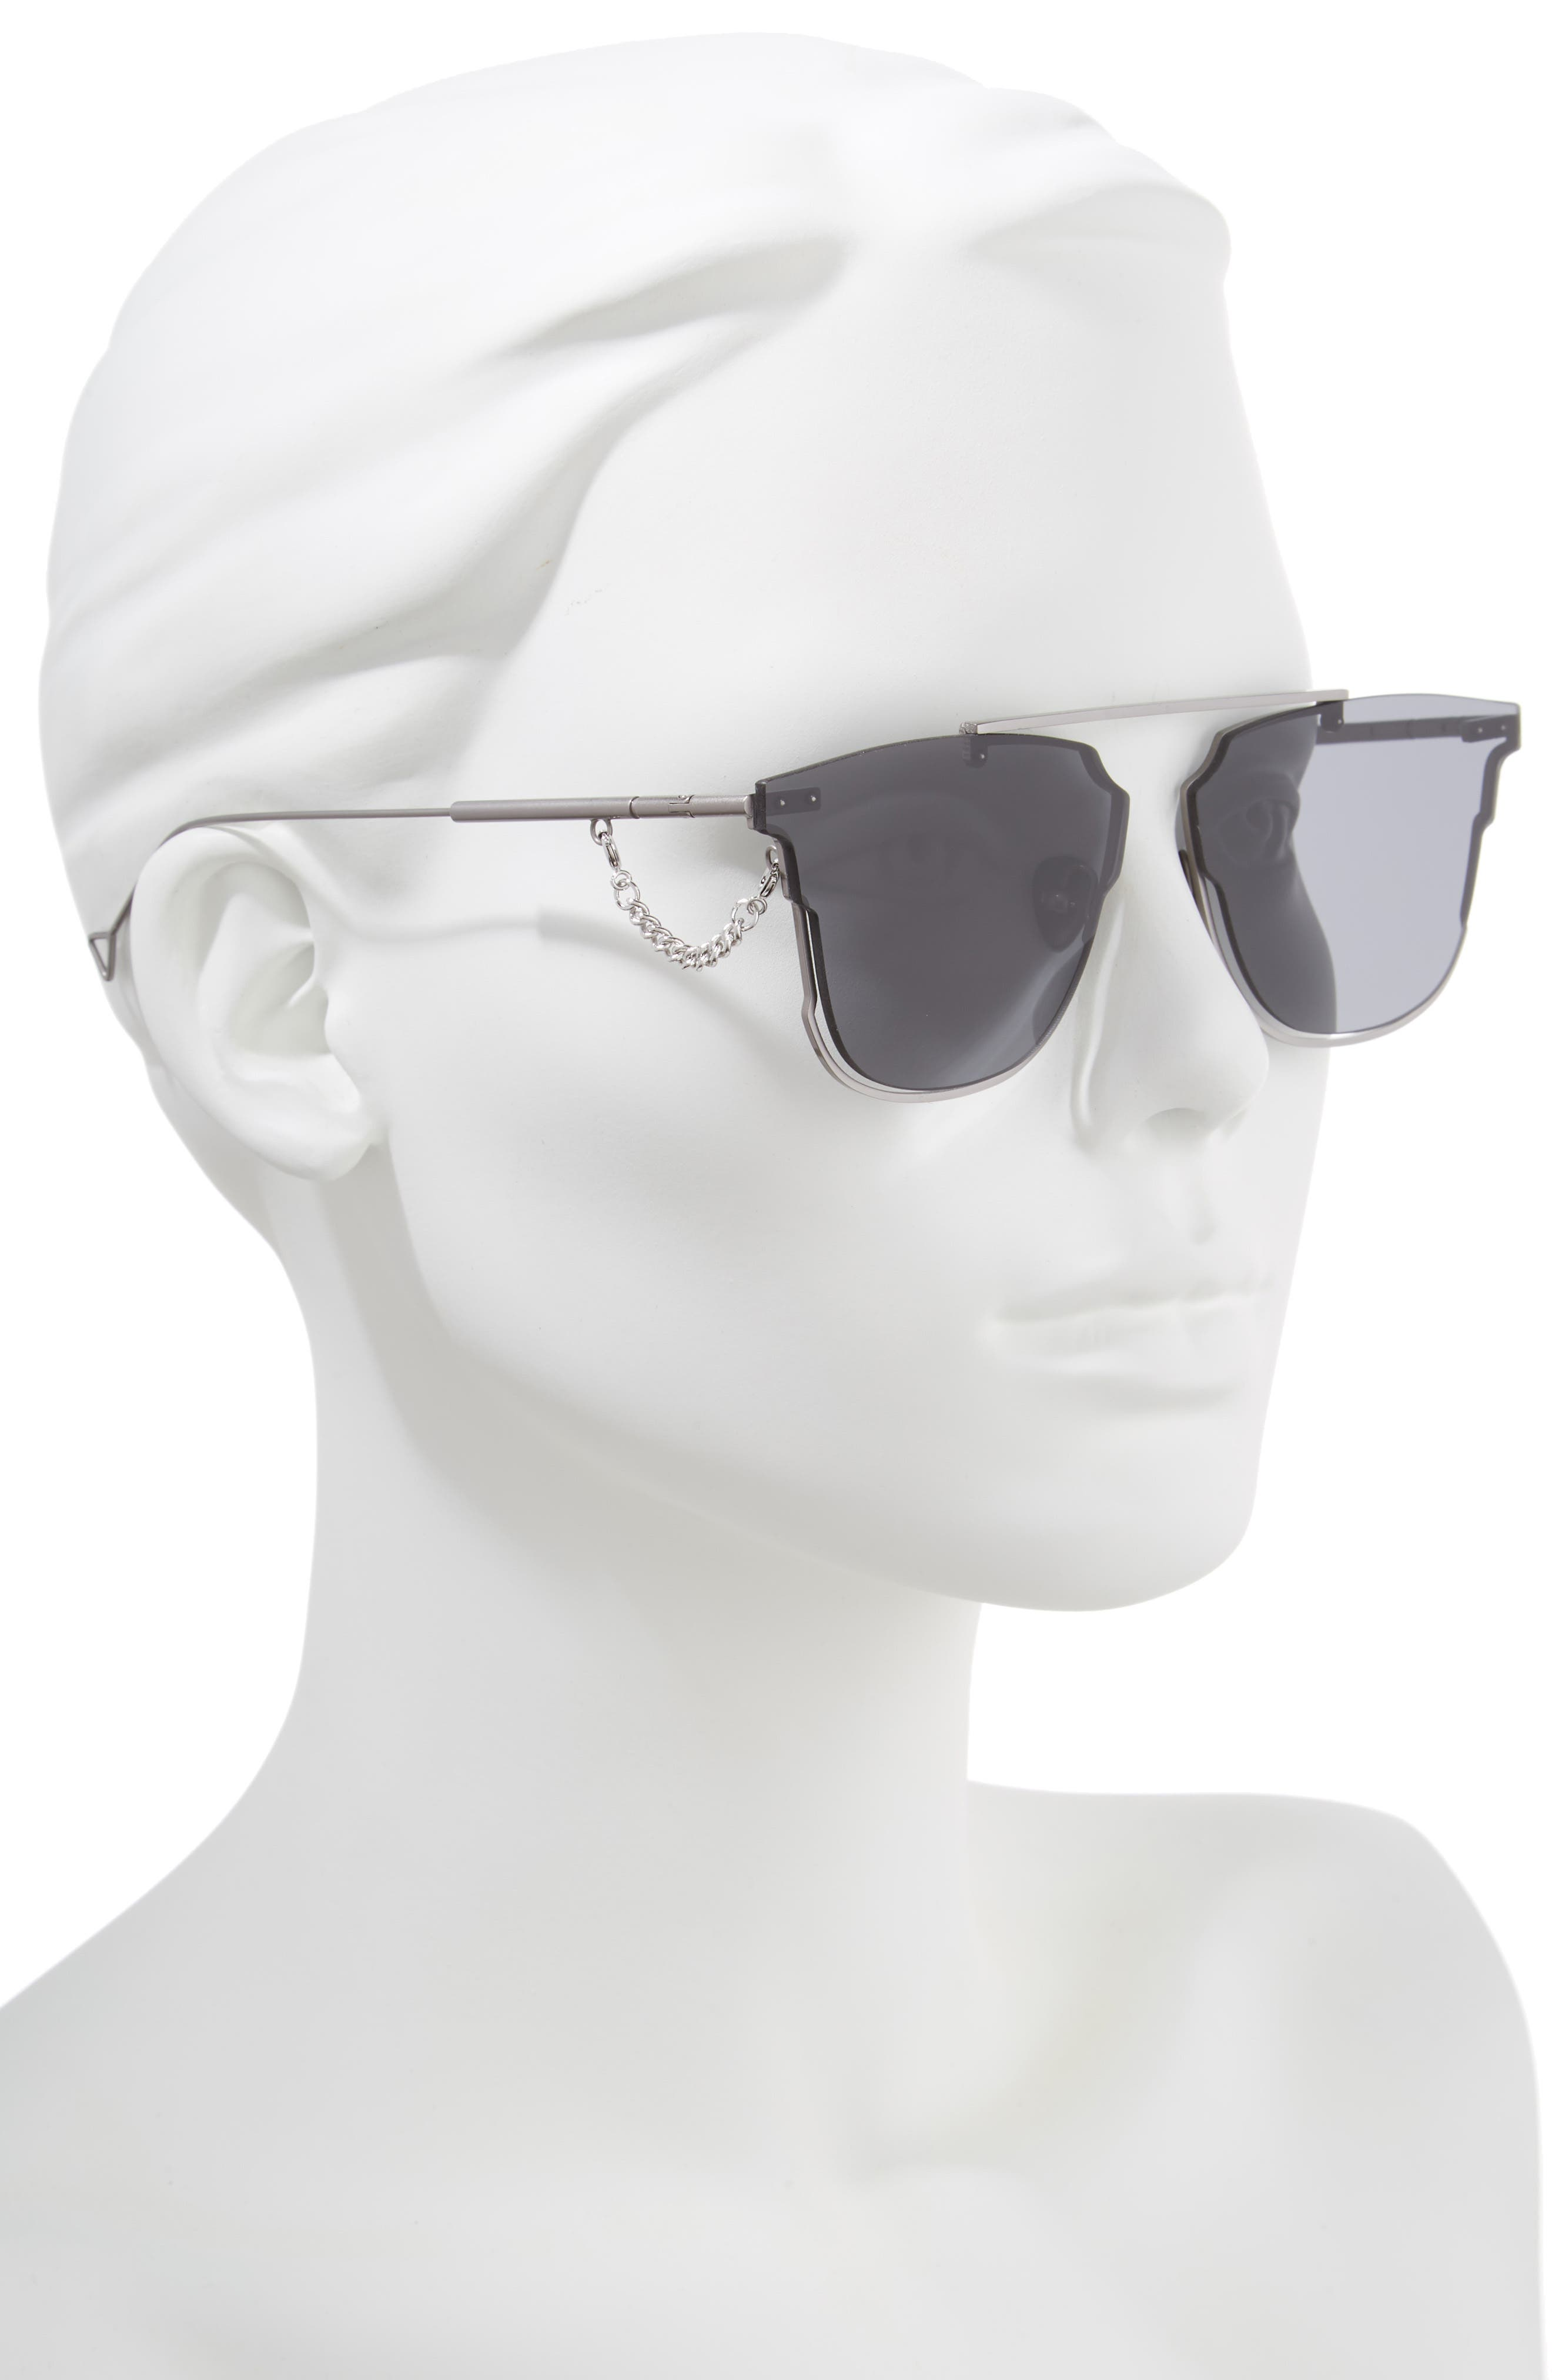 Hove 65mm Sunglasses,                             Alternate thumbnail 2, color,                             Smoke